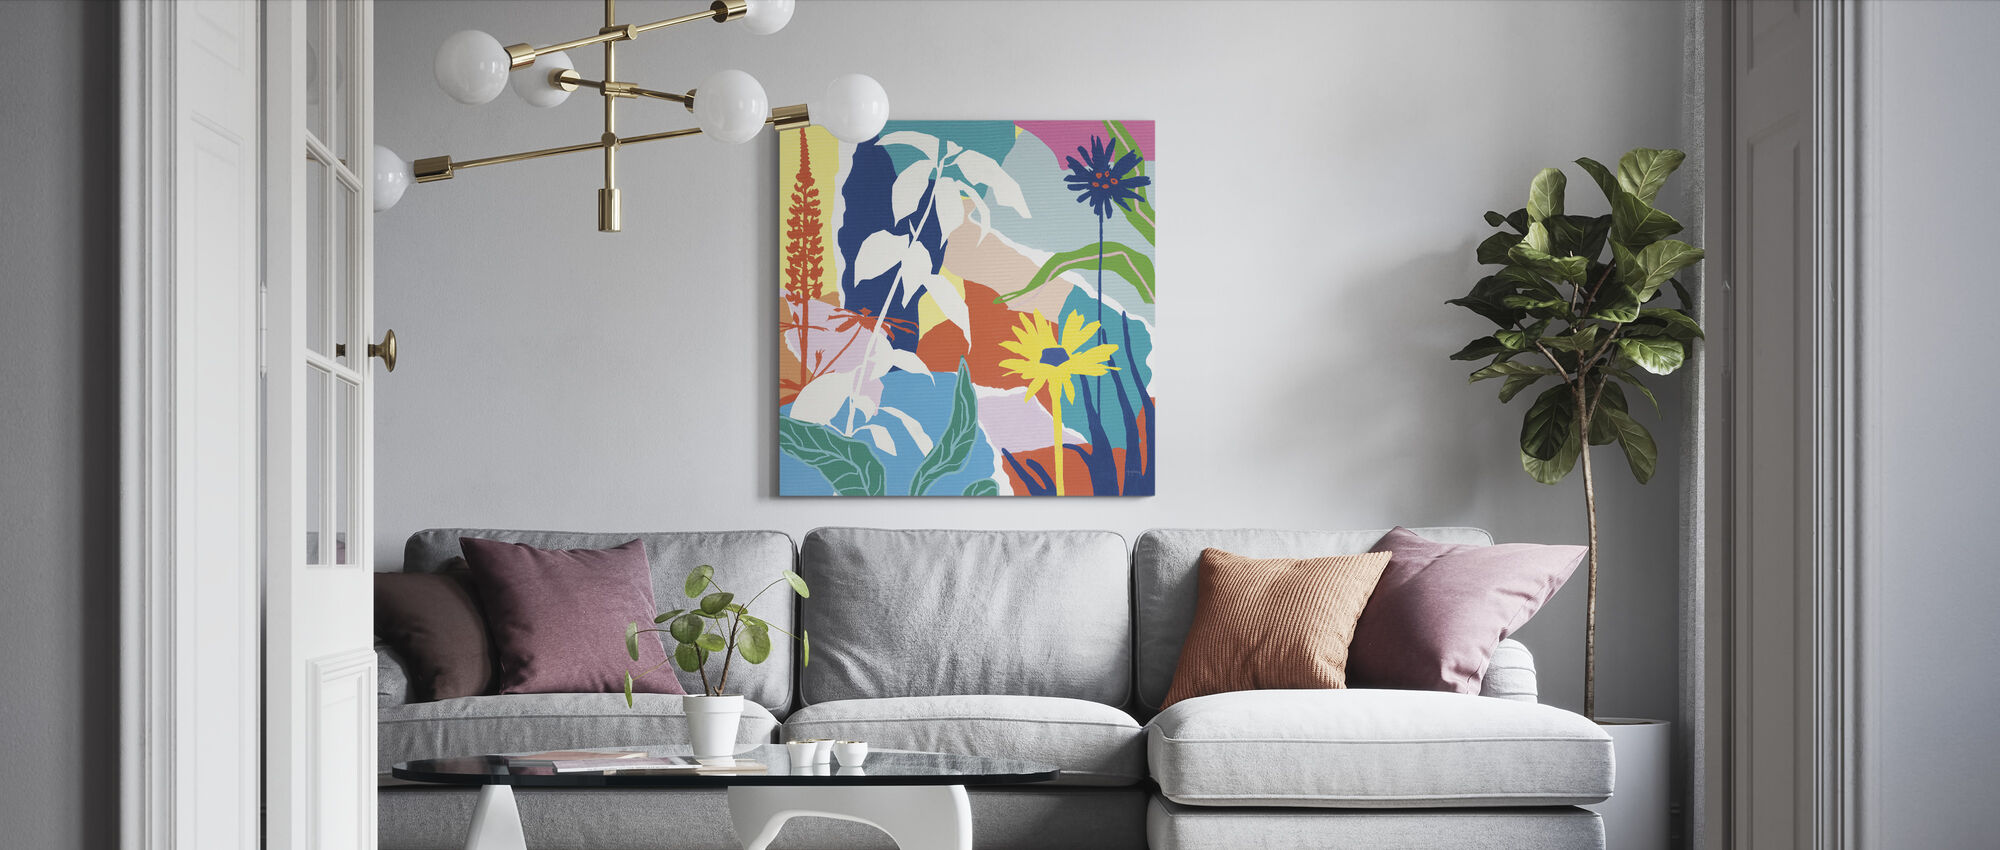 Happy Place II - Canvas print - Living Room